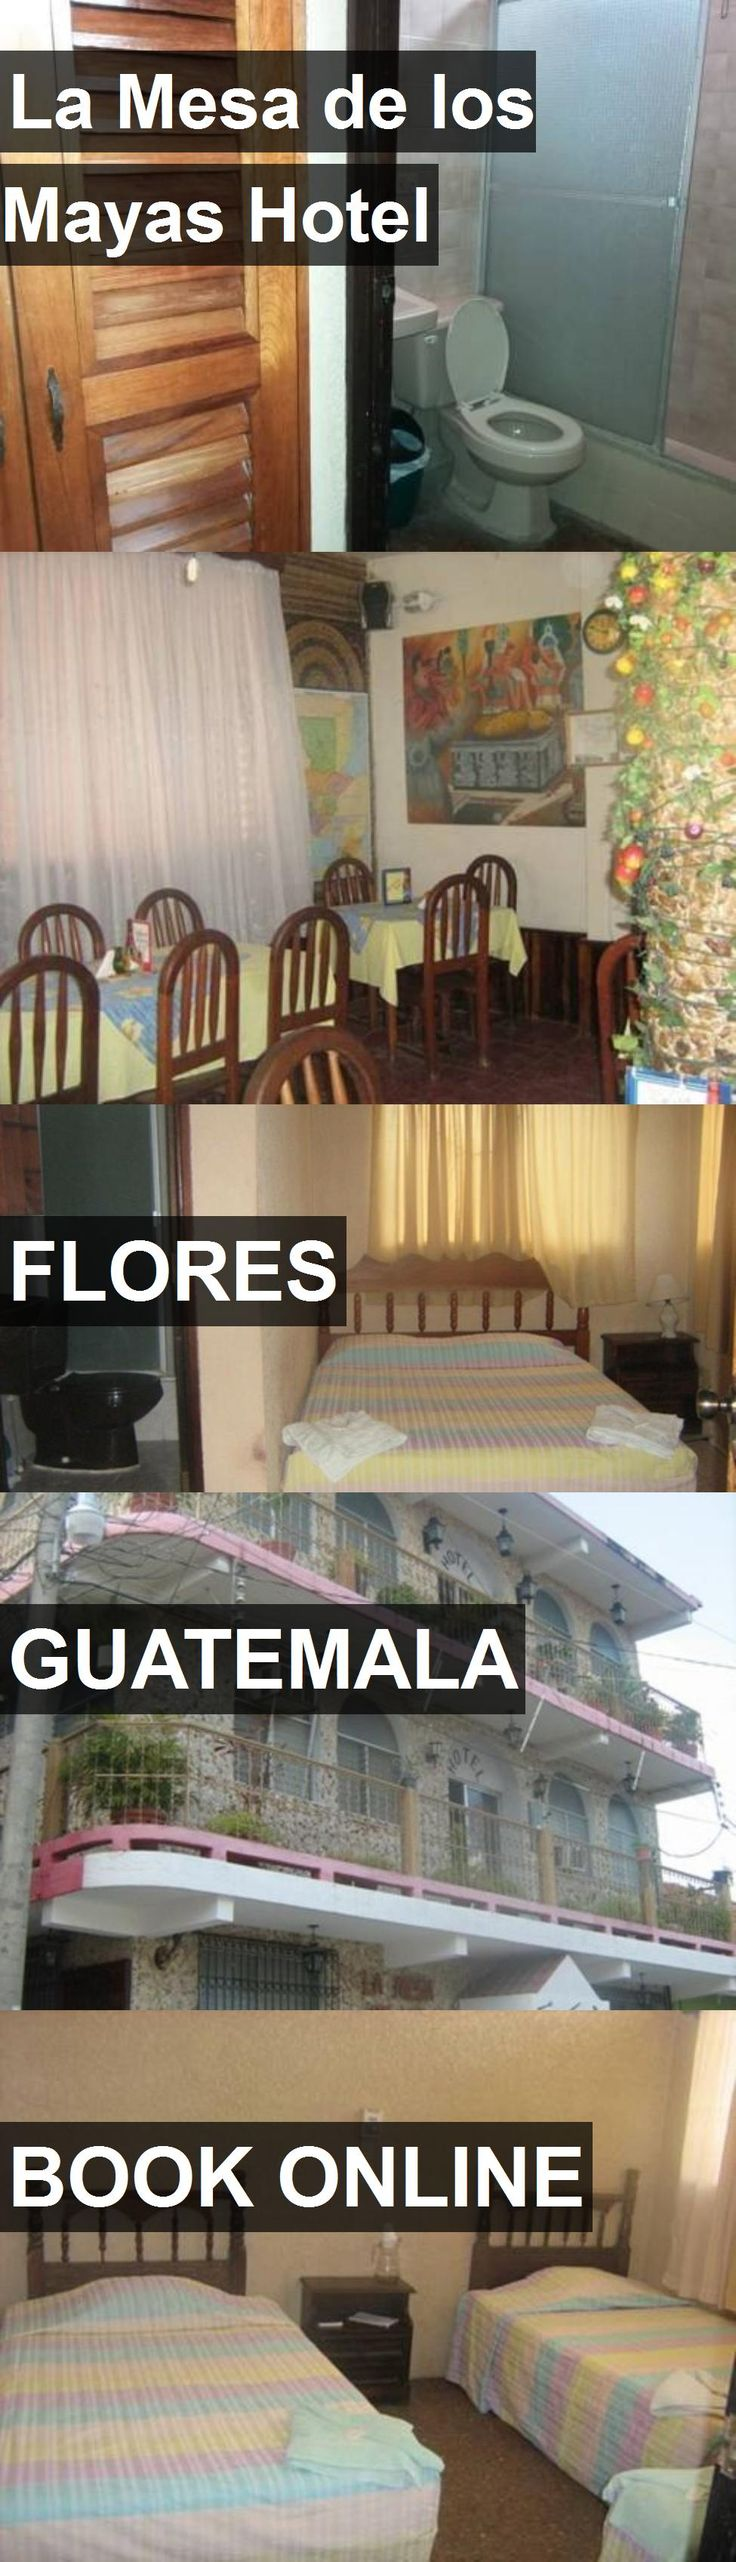 La Mesa de los Mayas Hotel in Flores, Guatemala. For more information, photos, reviews and best prices please follow the link. #Guatemala #Flores #travel #vacation #hotel